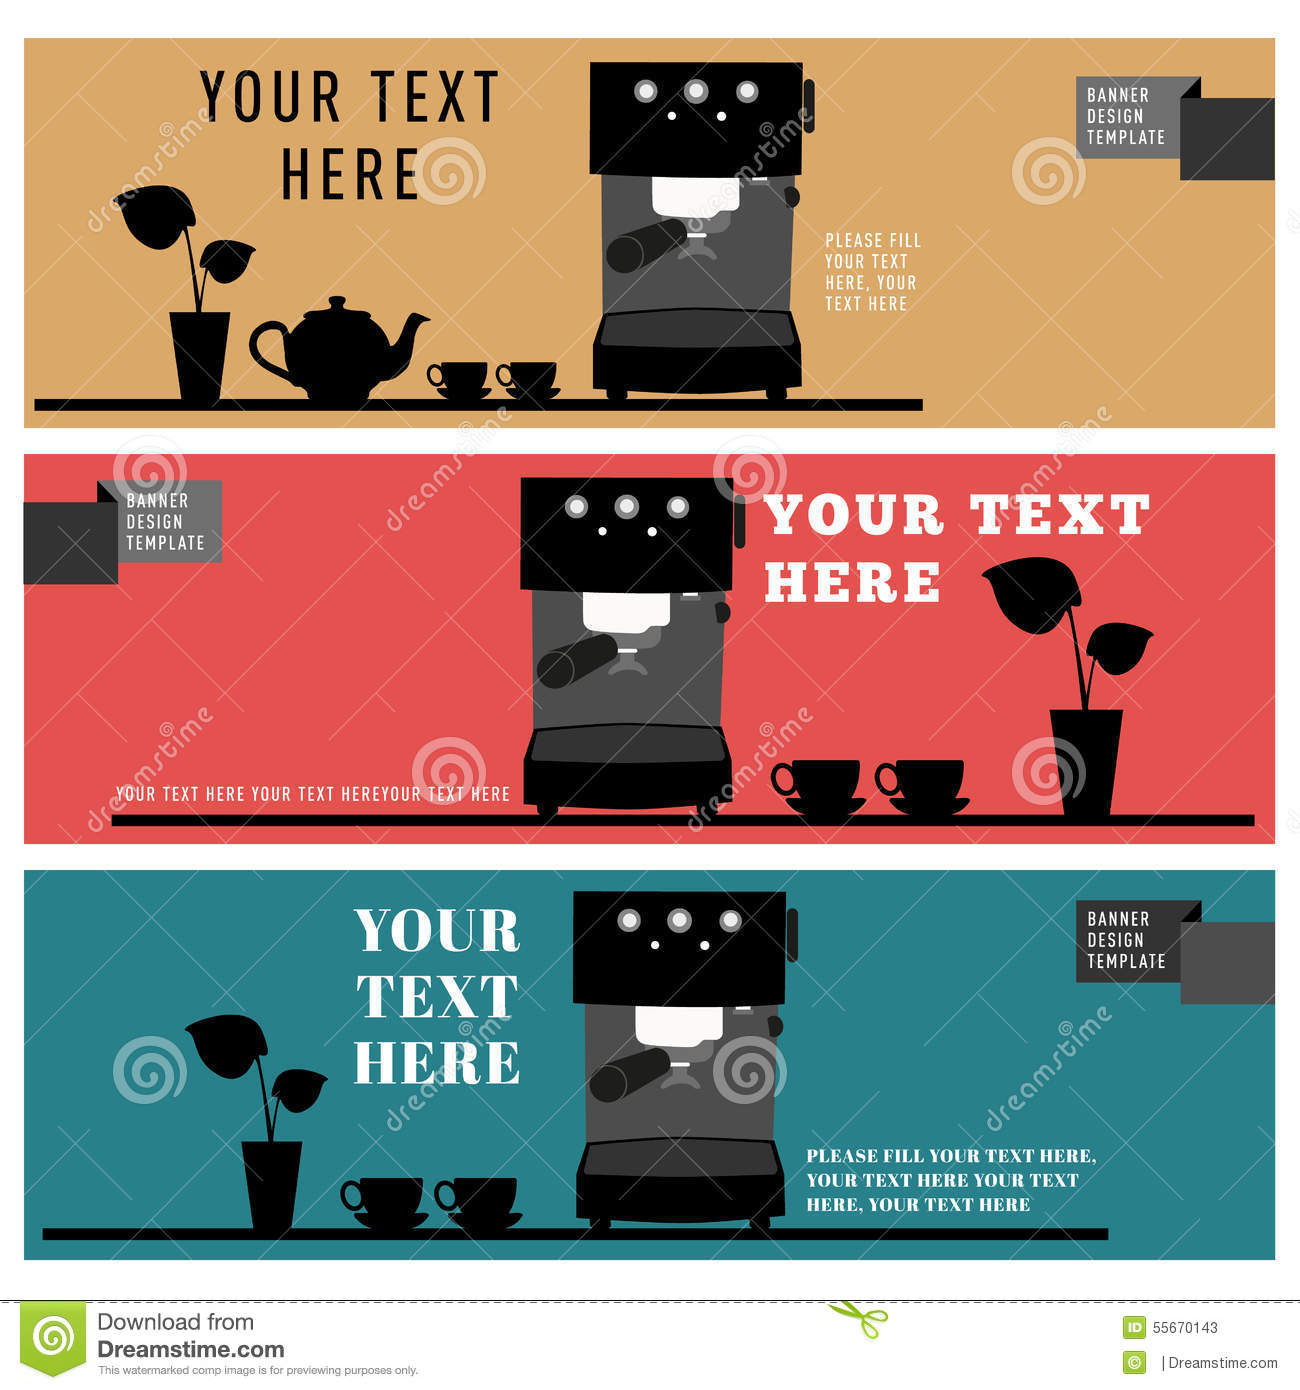 Banner design template coffee shop cafe icon element stock - Text banner design ...